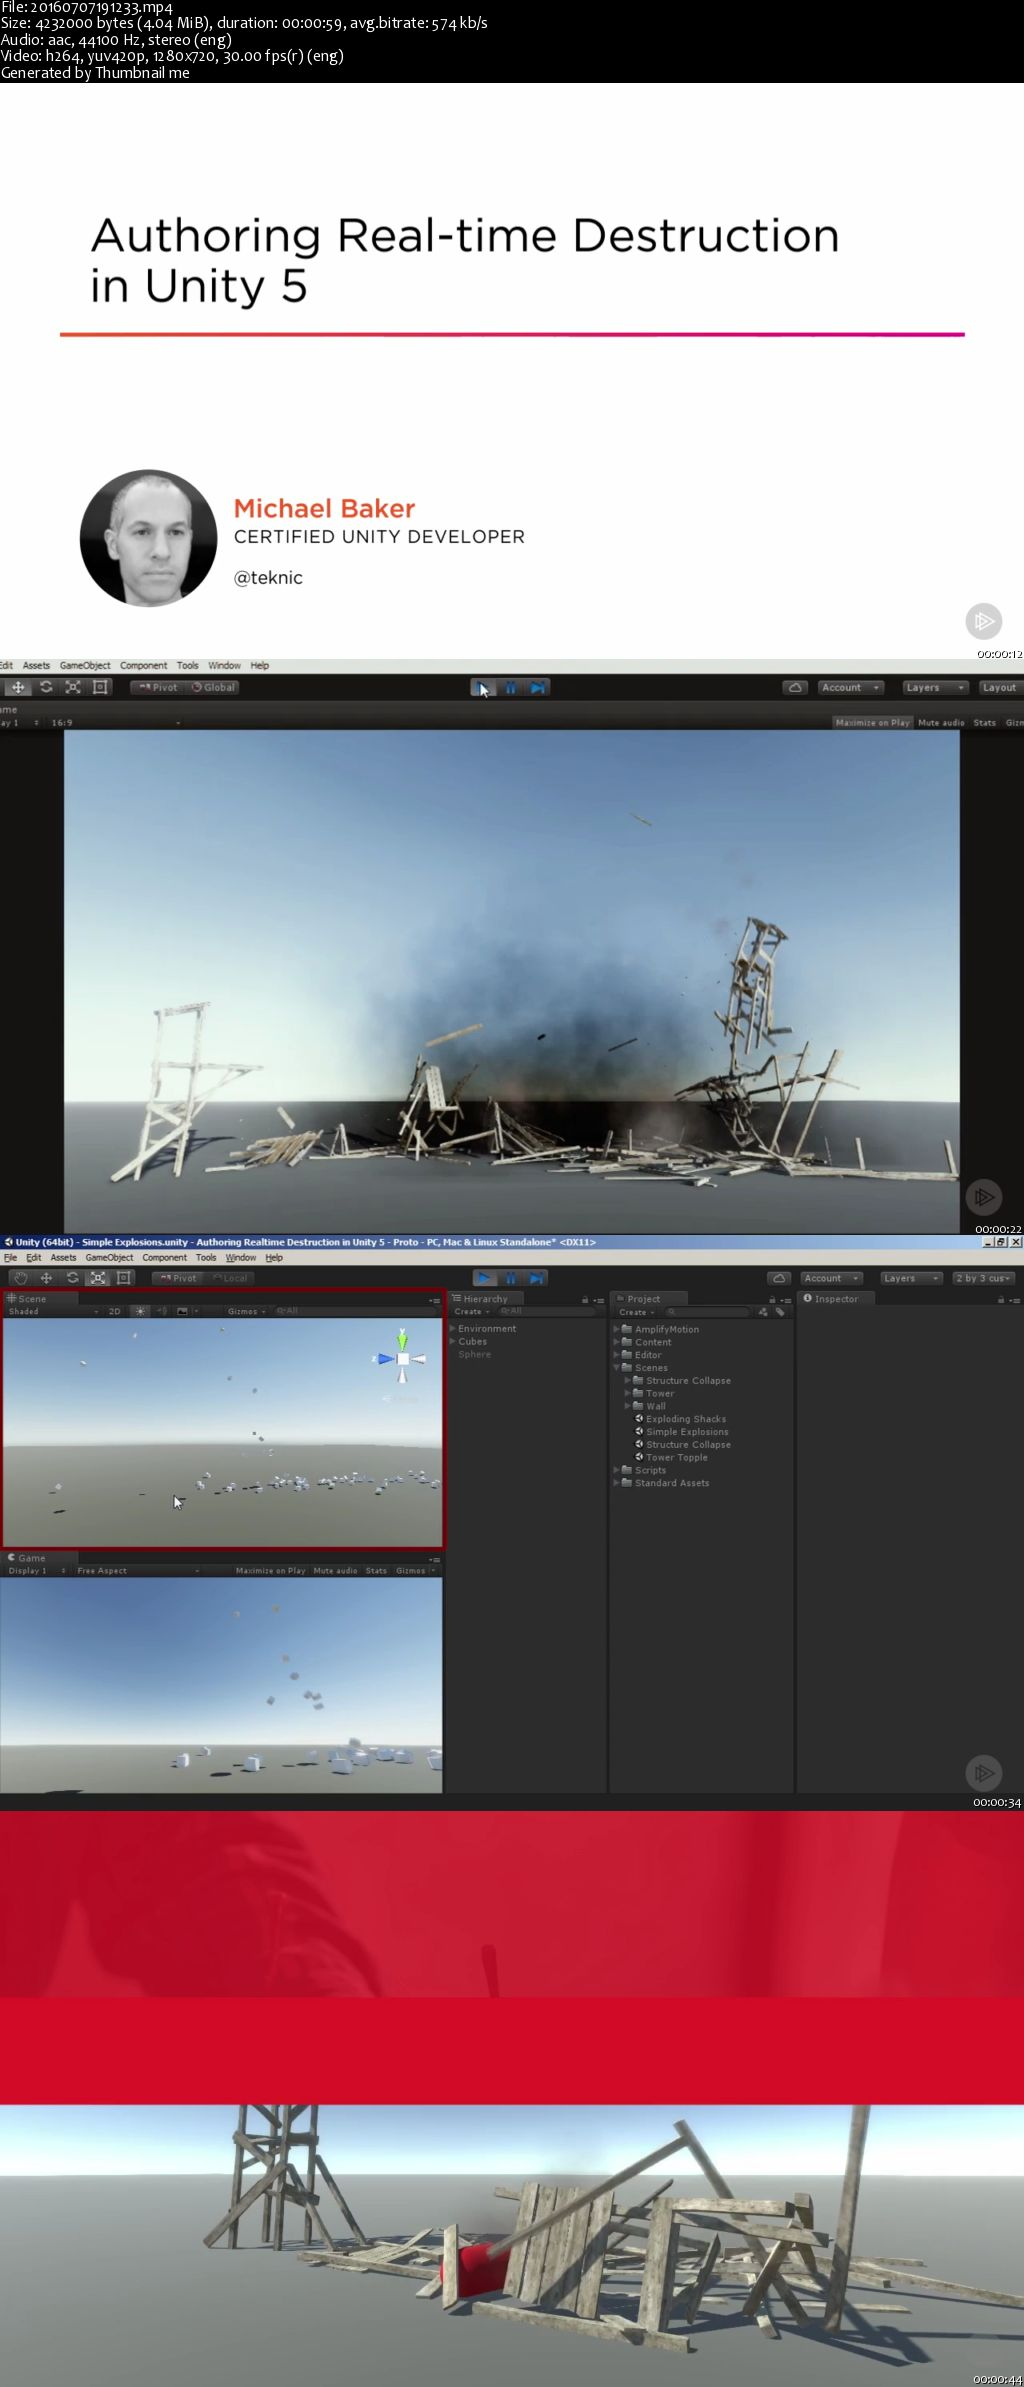 Authoring Real-time Destruction in Unity 5